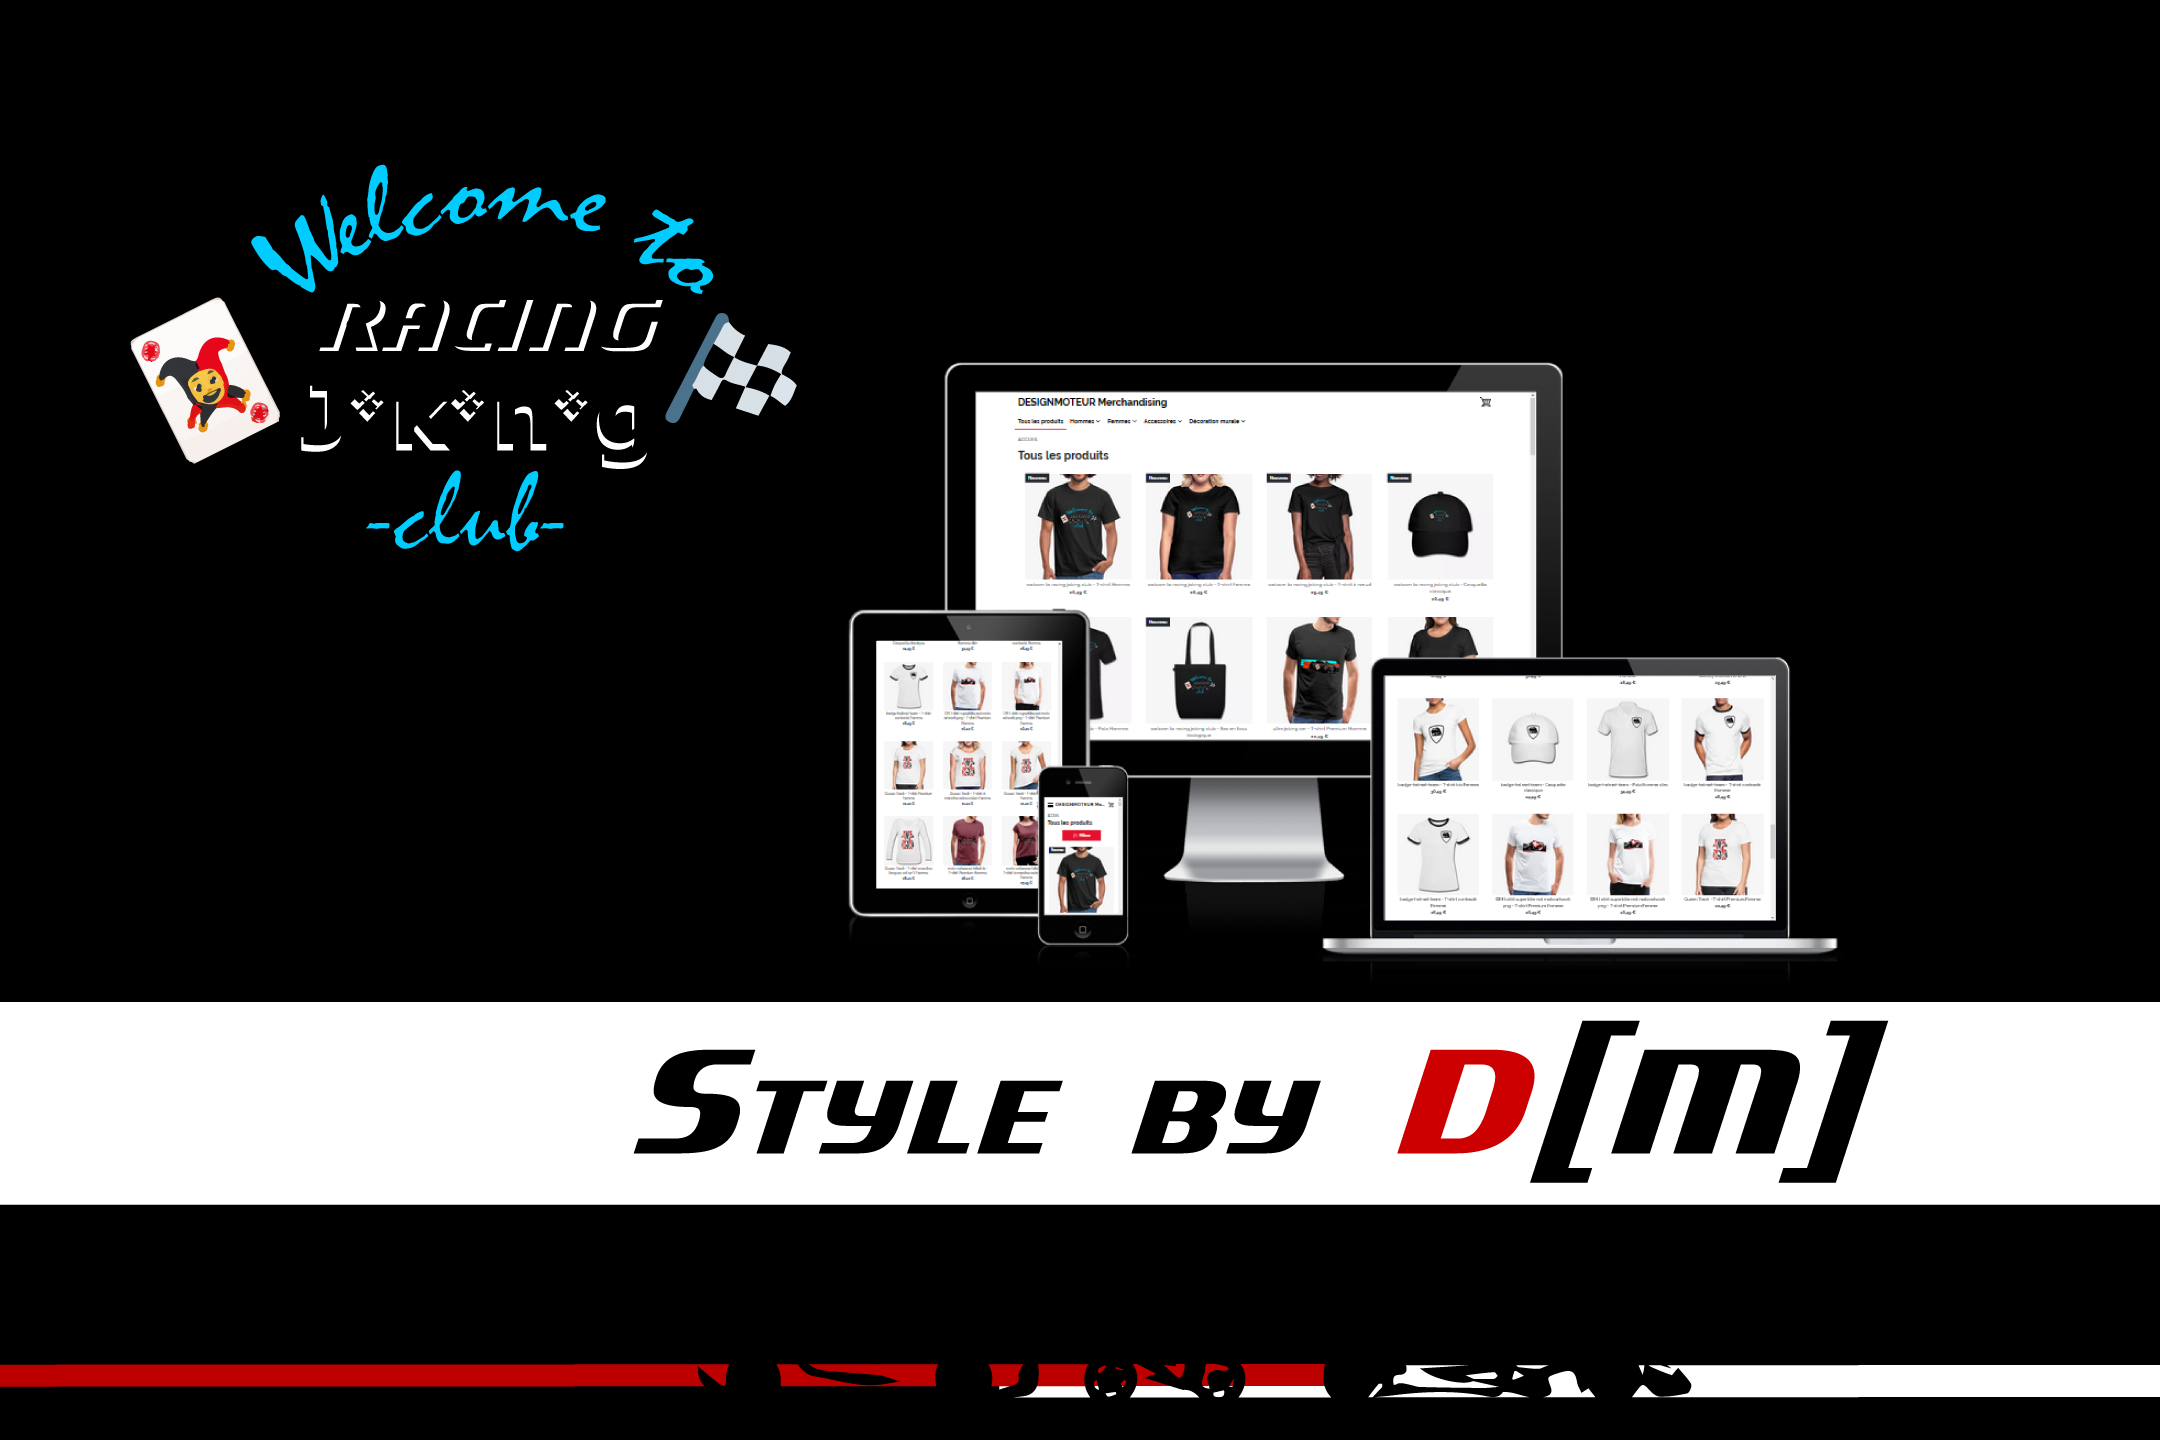 style by DM 2020 lookbook racing joking club